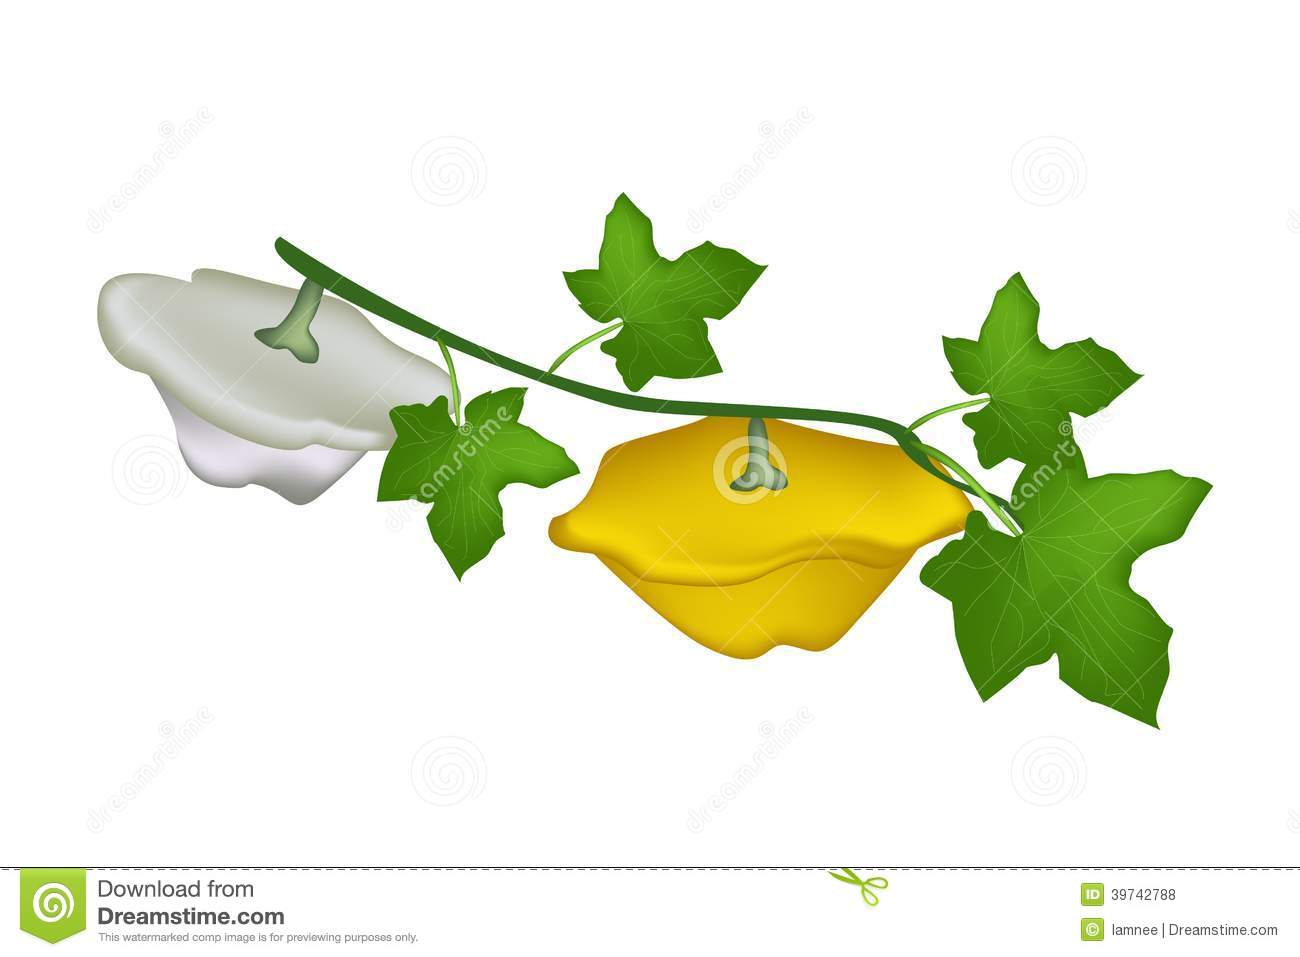 two pattypan squash plant on white background stock vector ground clip art no background ground clipart